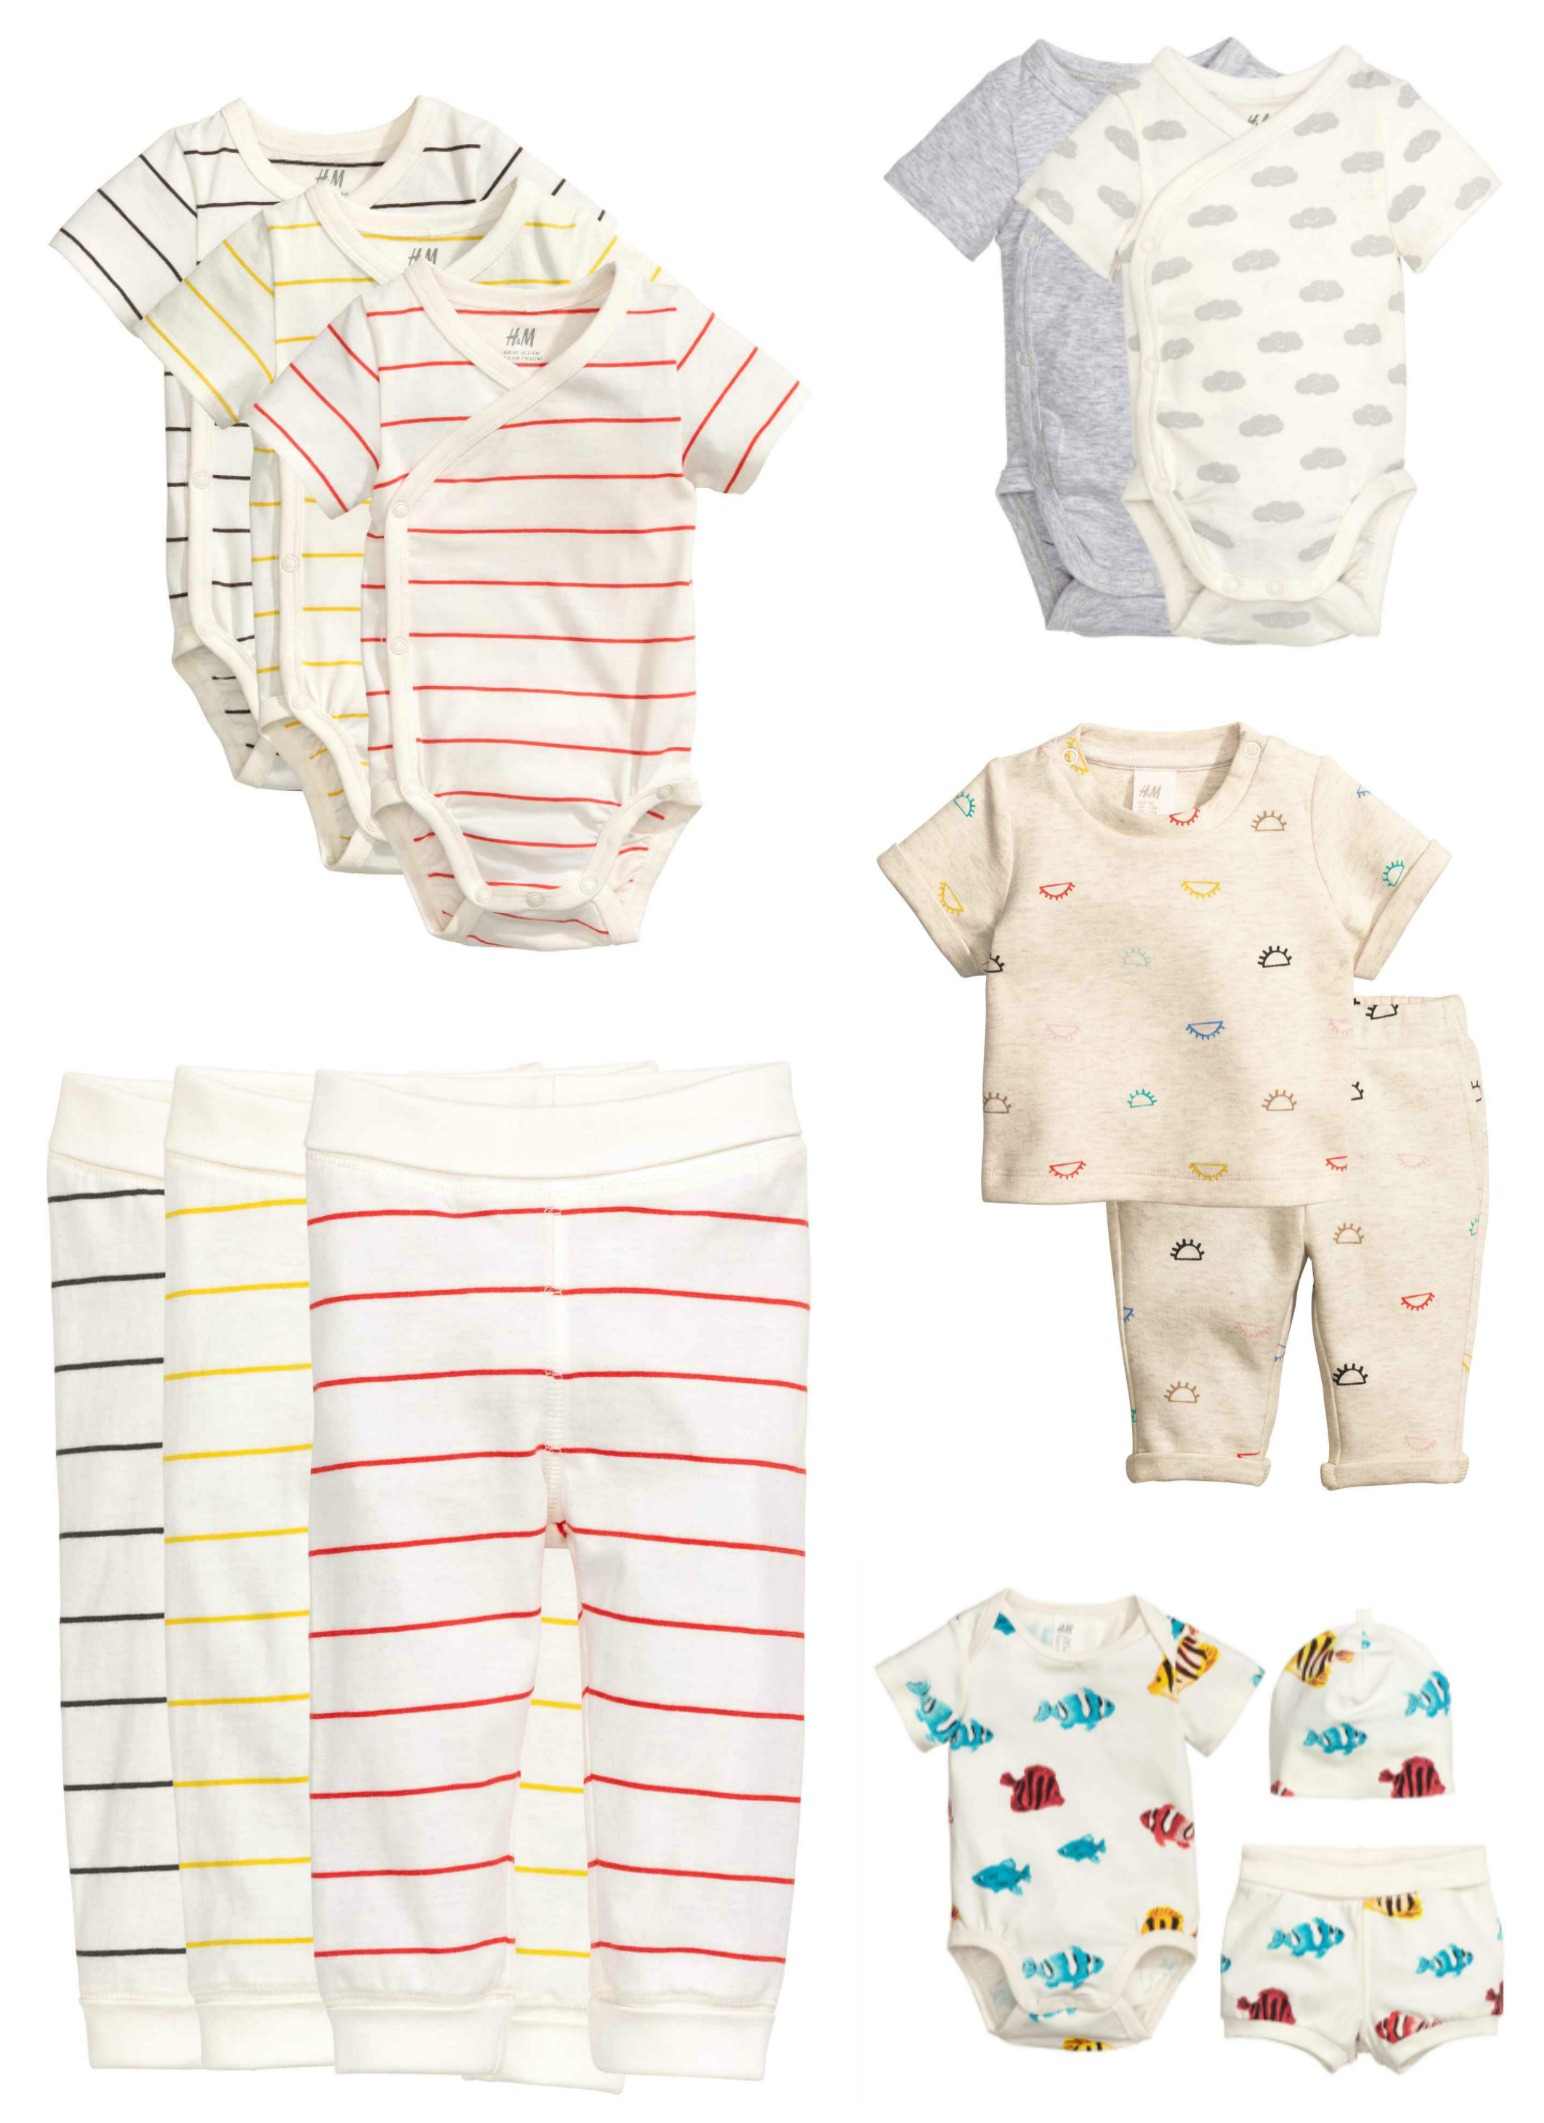 Gap Uni Baby Clothes Newest and Cutest Baby Clothing Collection